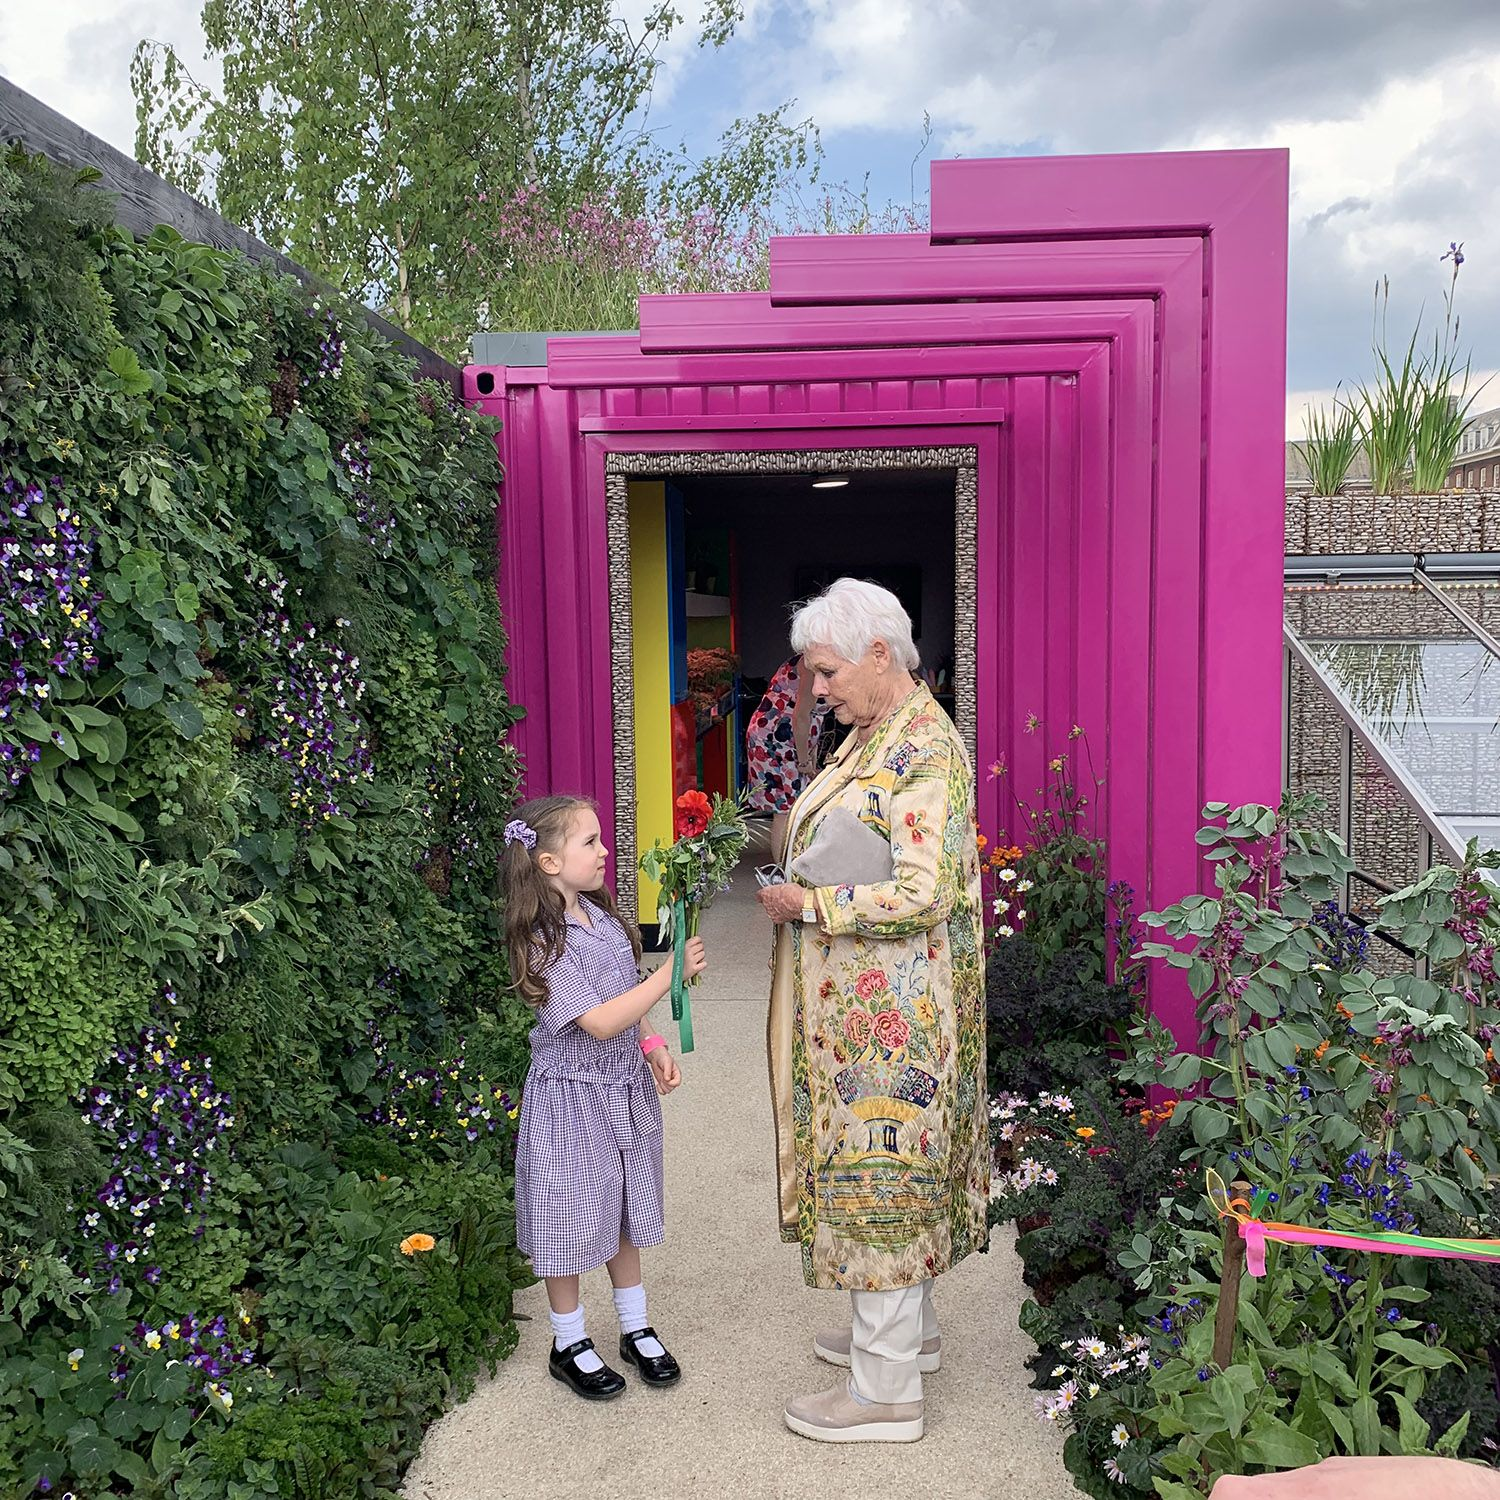 The Top 5 Takeaways from the 2019 Chelsea Flower Show